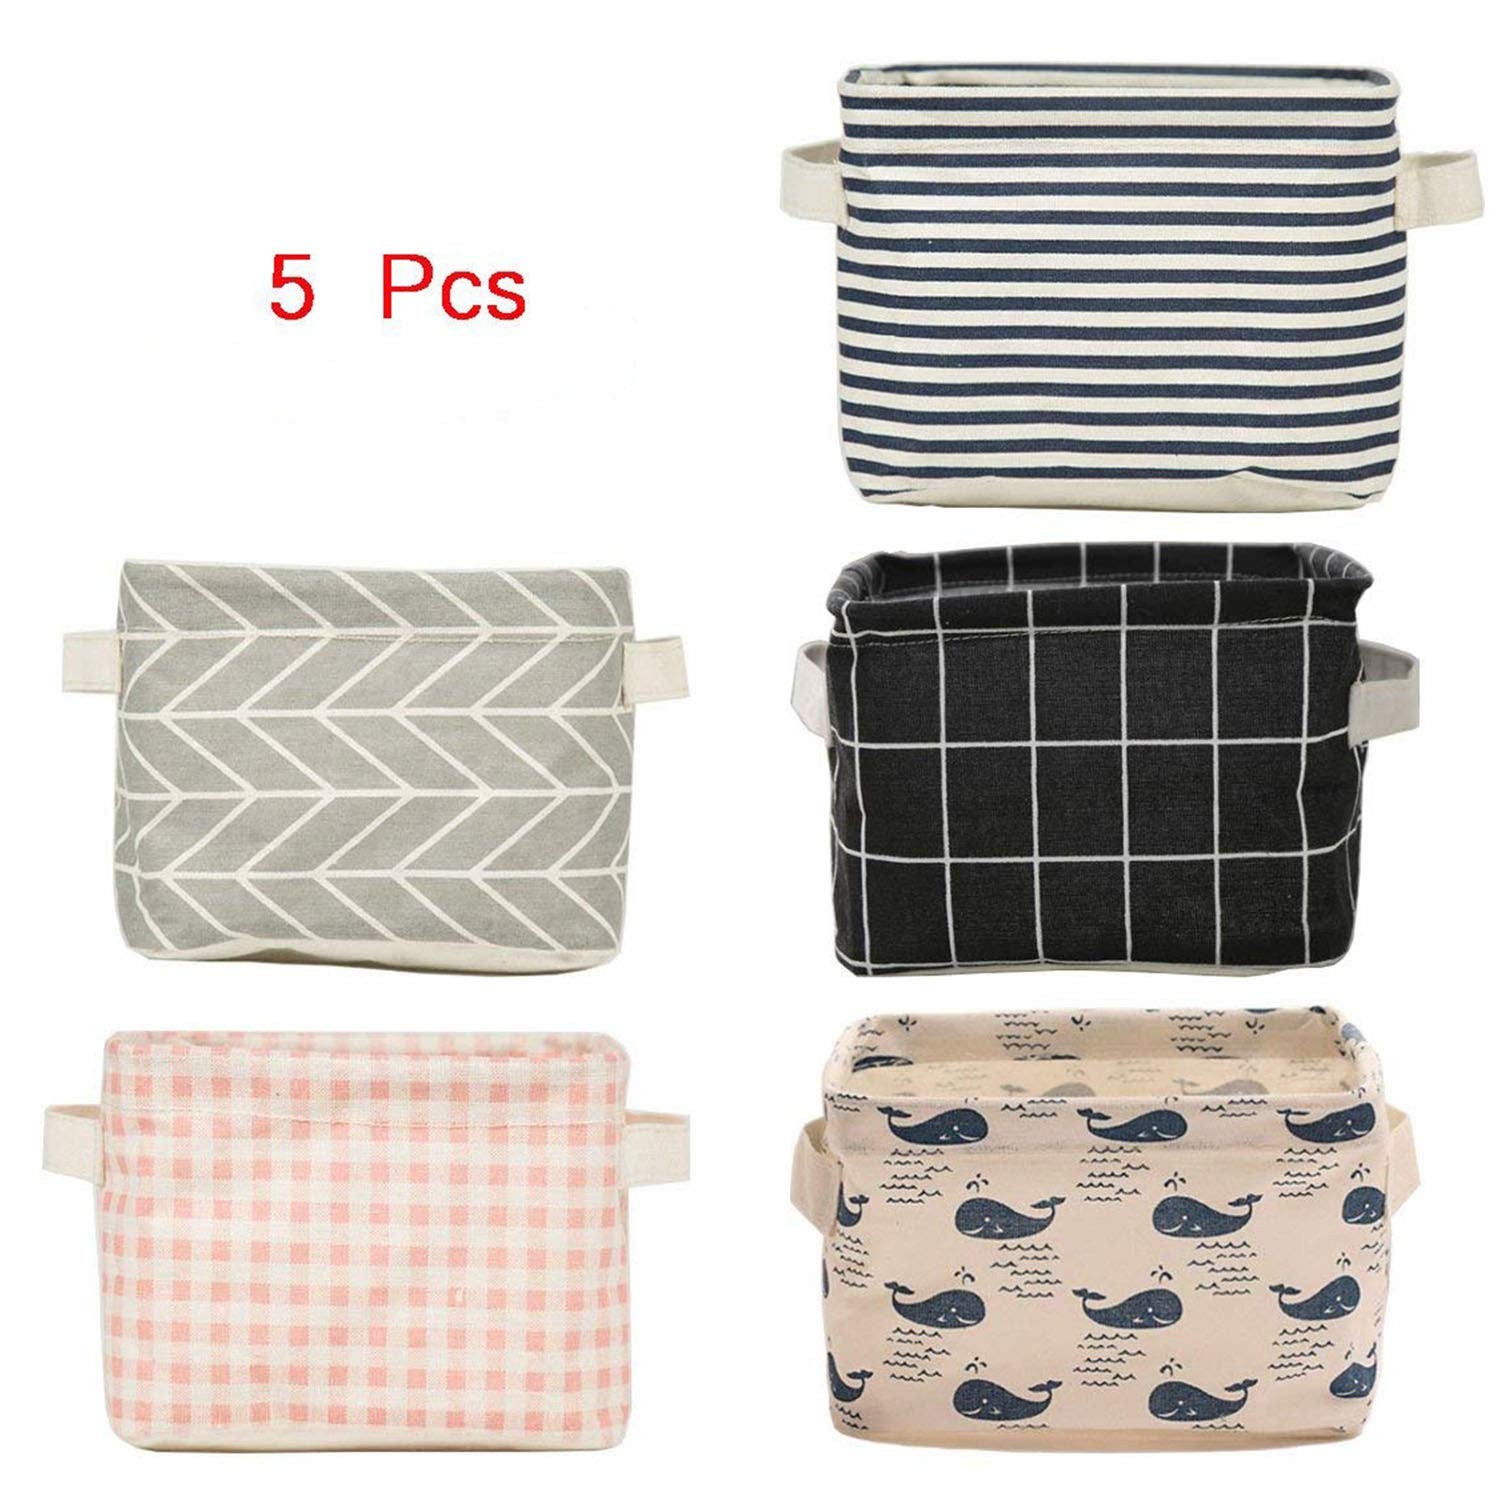 5 Pcs Foldable Storage Bin Basket,Foldable Fabric Storage Receive Basket with Handle Cotton Linen Blend Storage Bins for Makeup, Book, Baby Toy,8x6x5.5 inch by Csdtylh